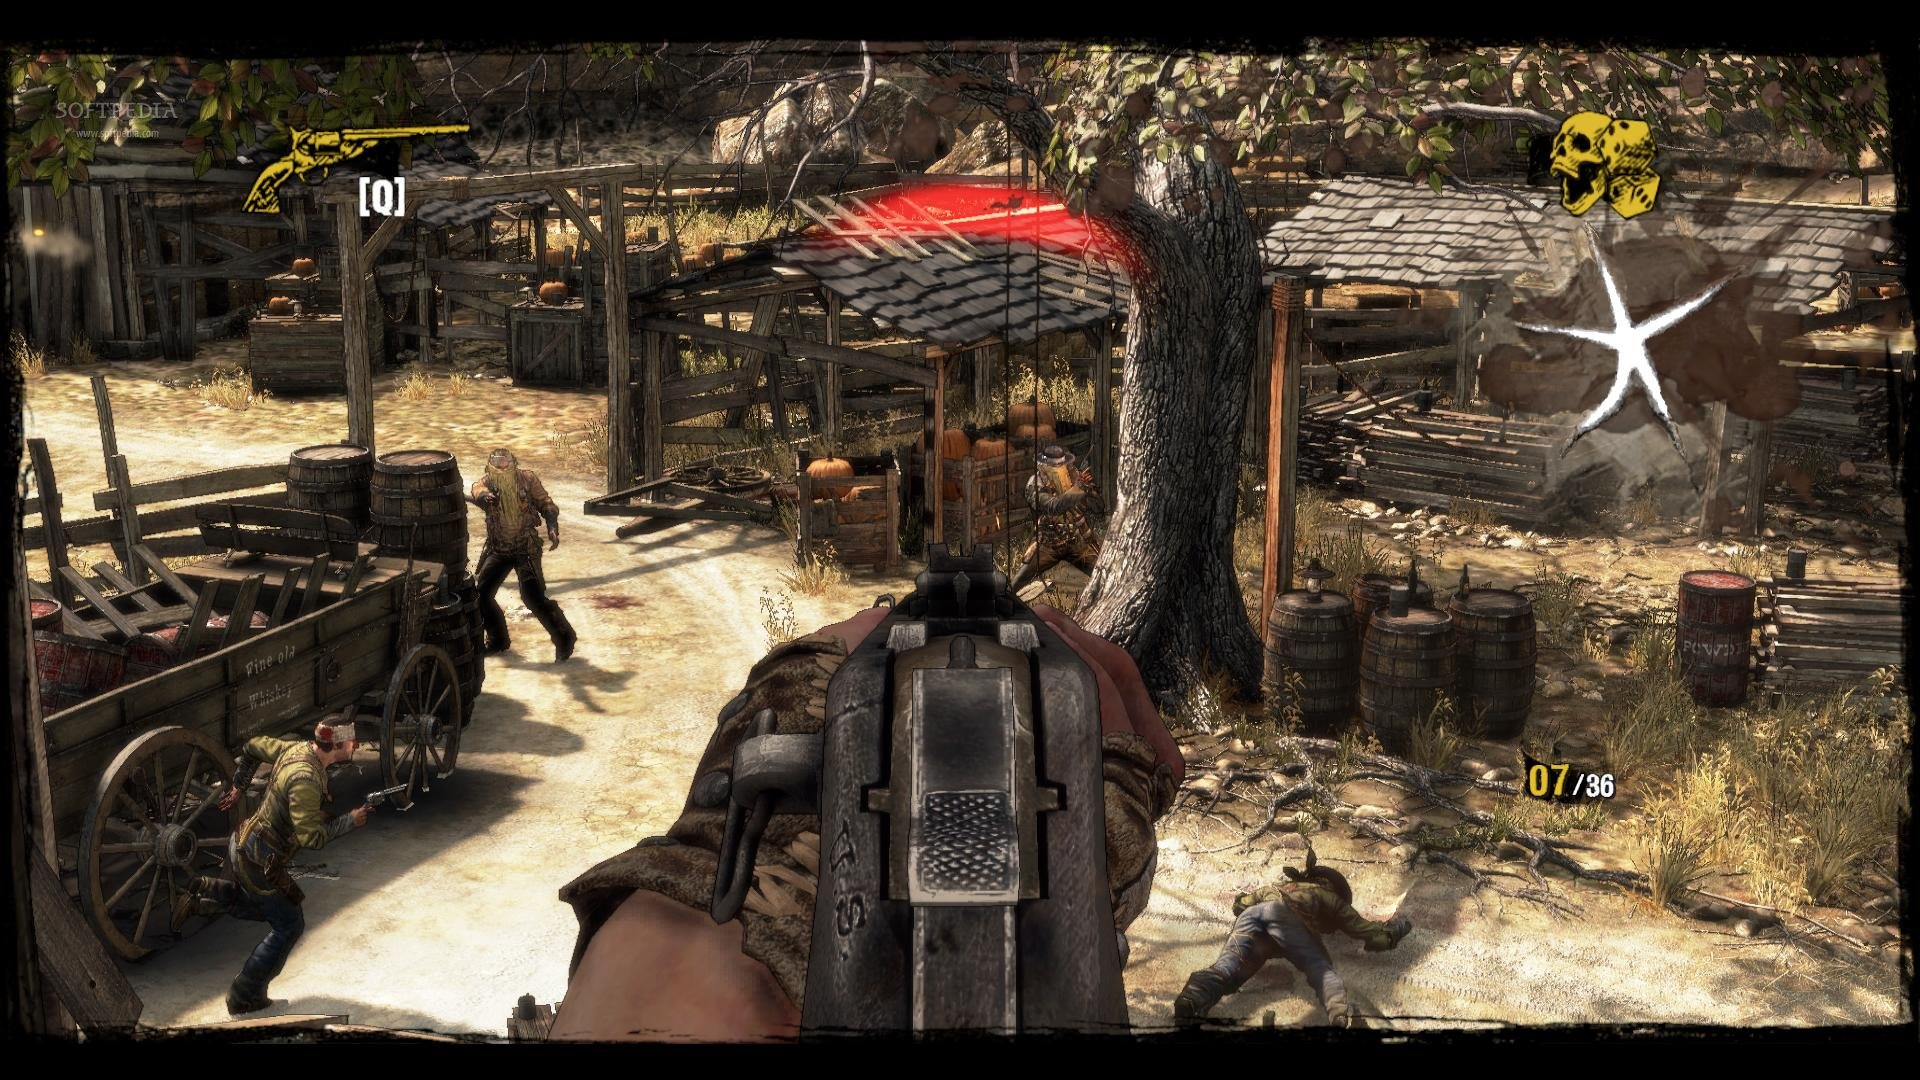 Call of Juarez: Bound in Blood - marketplace.xbox.com